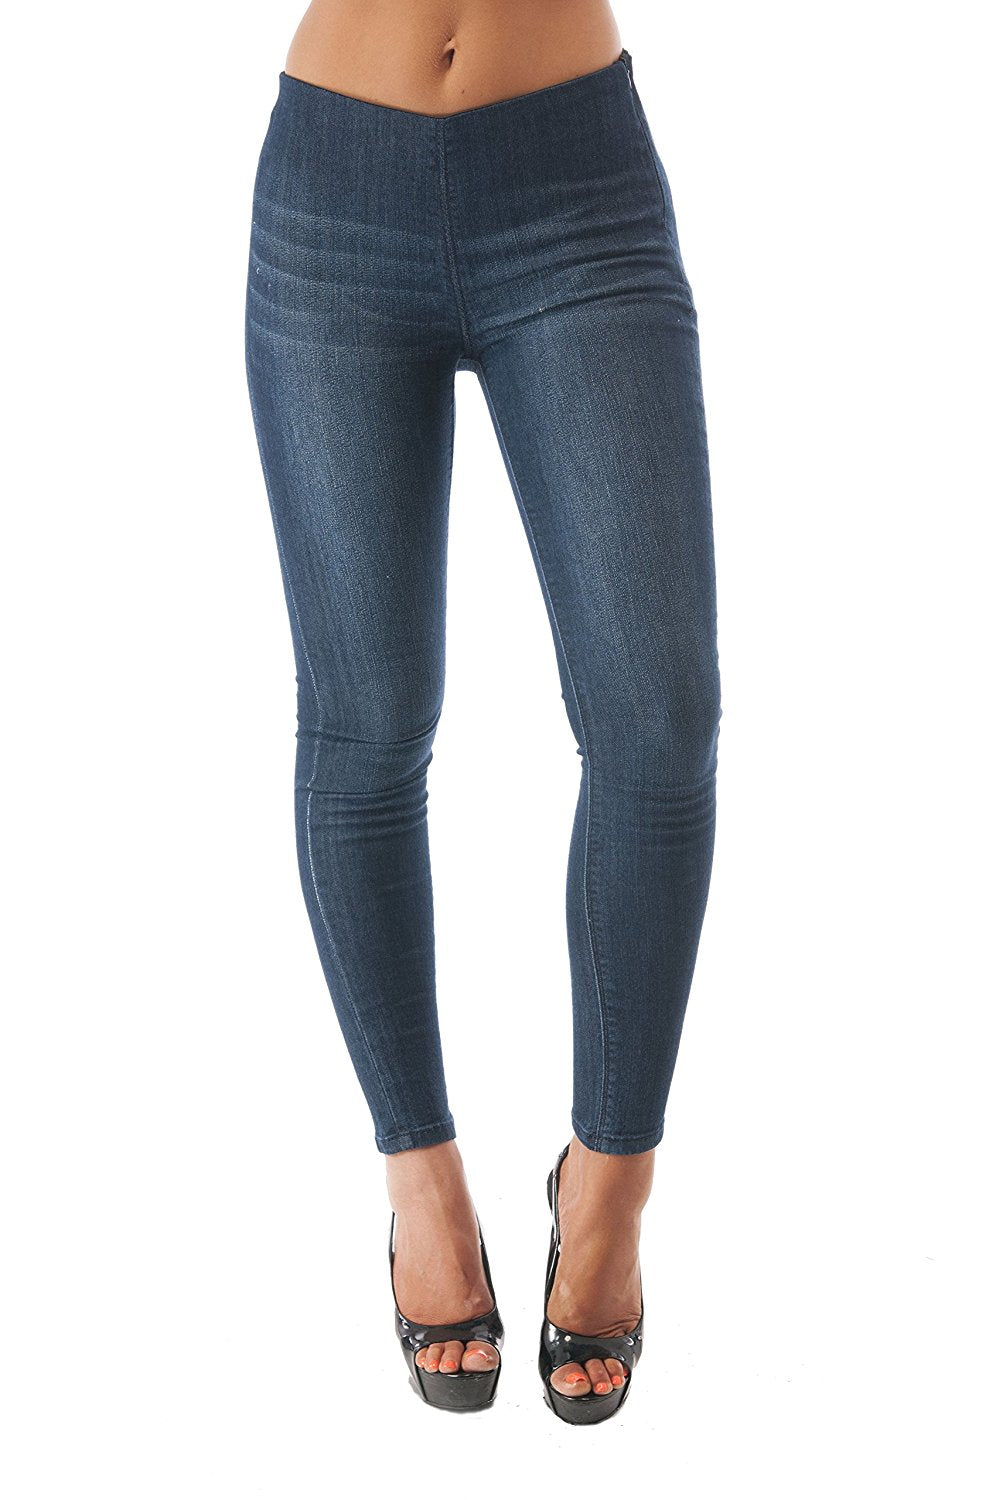 Hollywood Star Fashion High Waisted Denim Jegging Pants